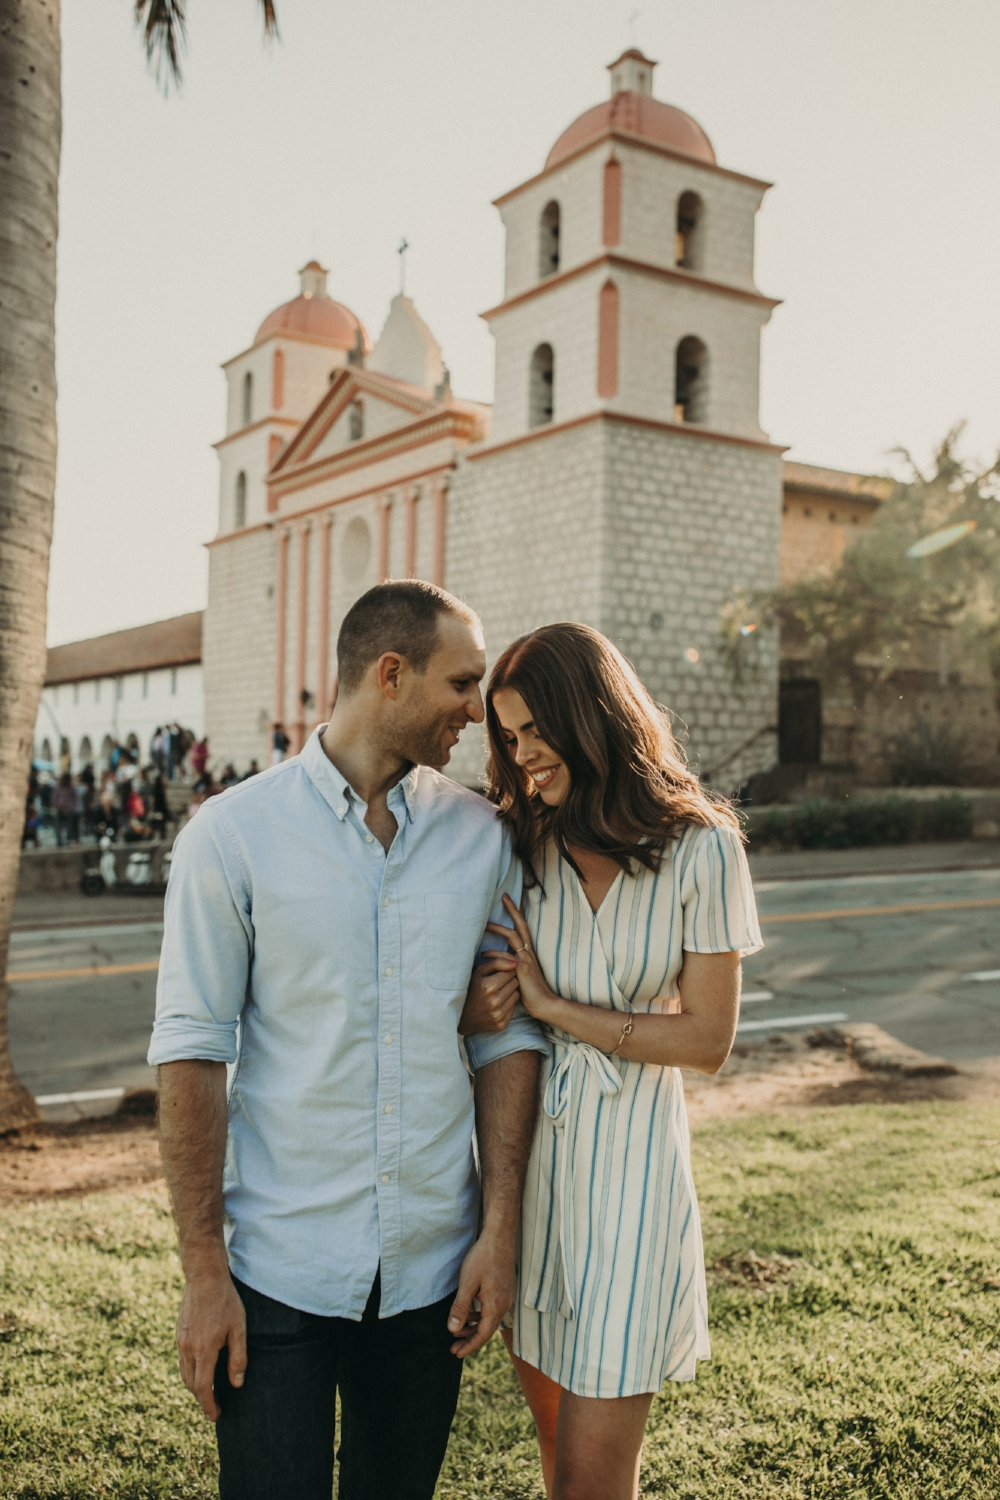 santa-barbara-mission-engagement-photos-20180527-079A2575-Edit.jpg